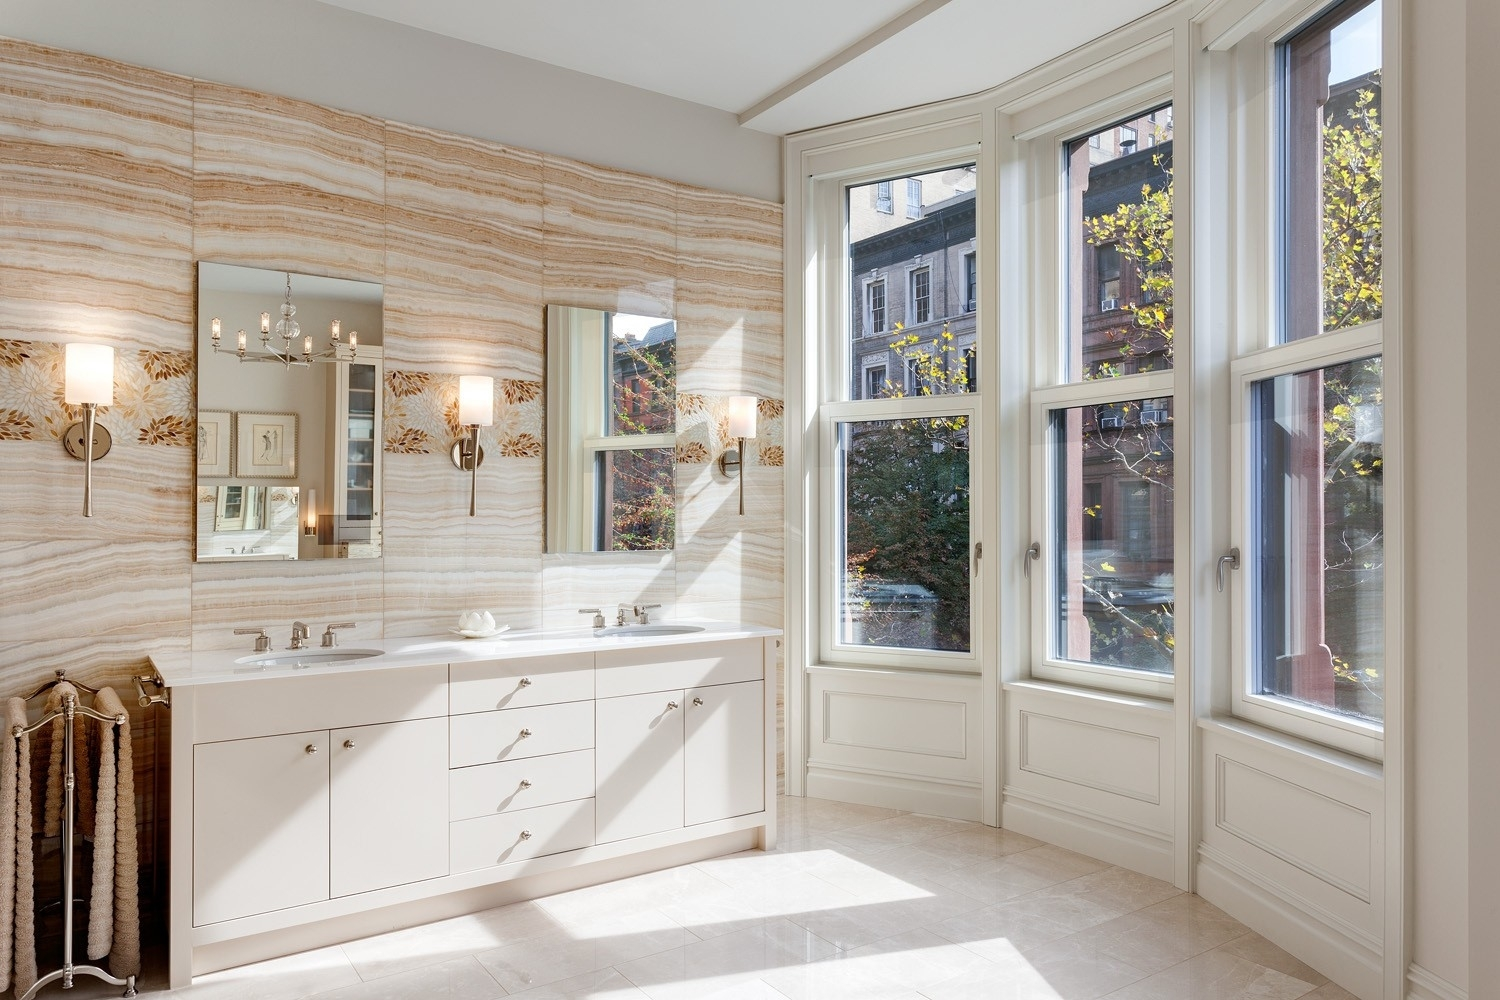 15. Single Family Townhouse for Sale at Upper West Side, New York, NY 10024